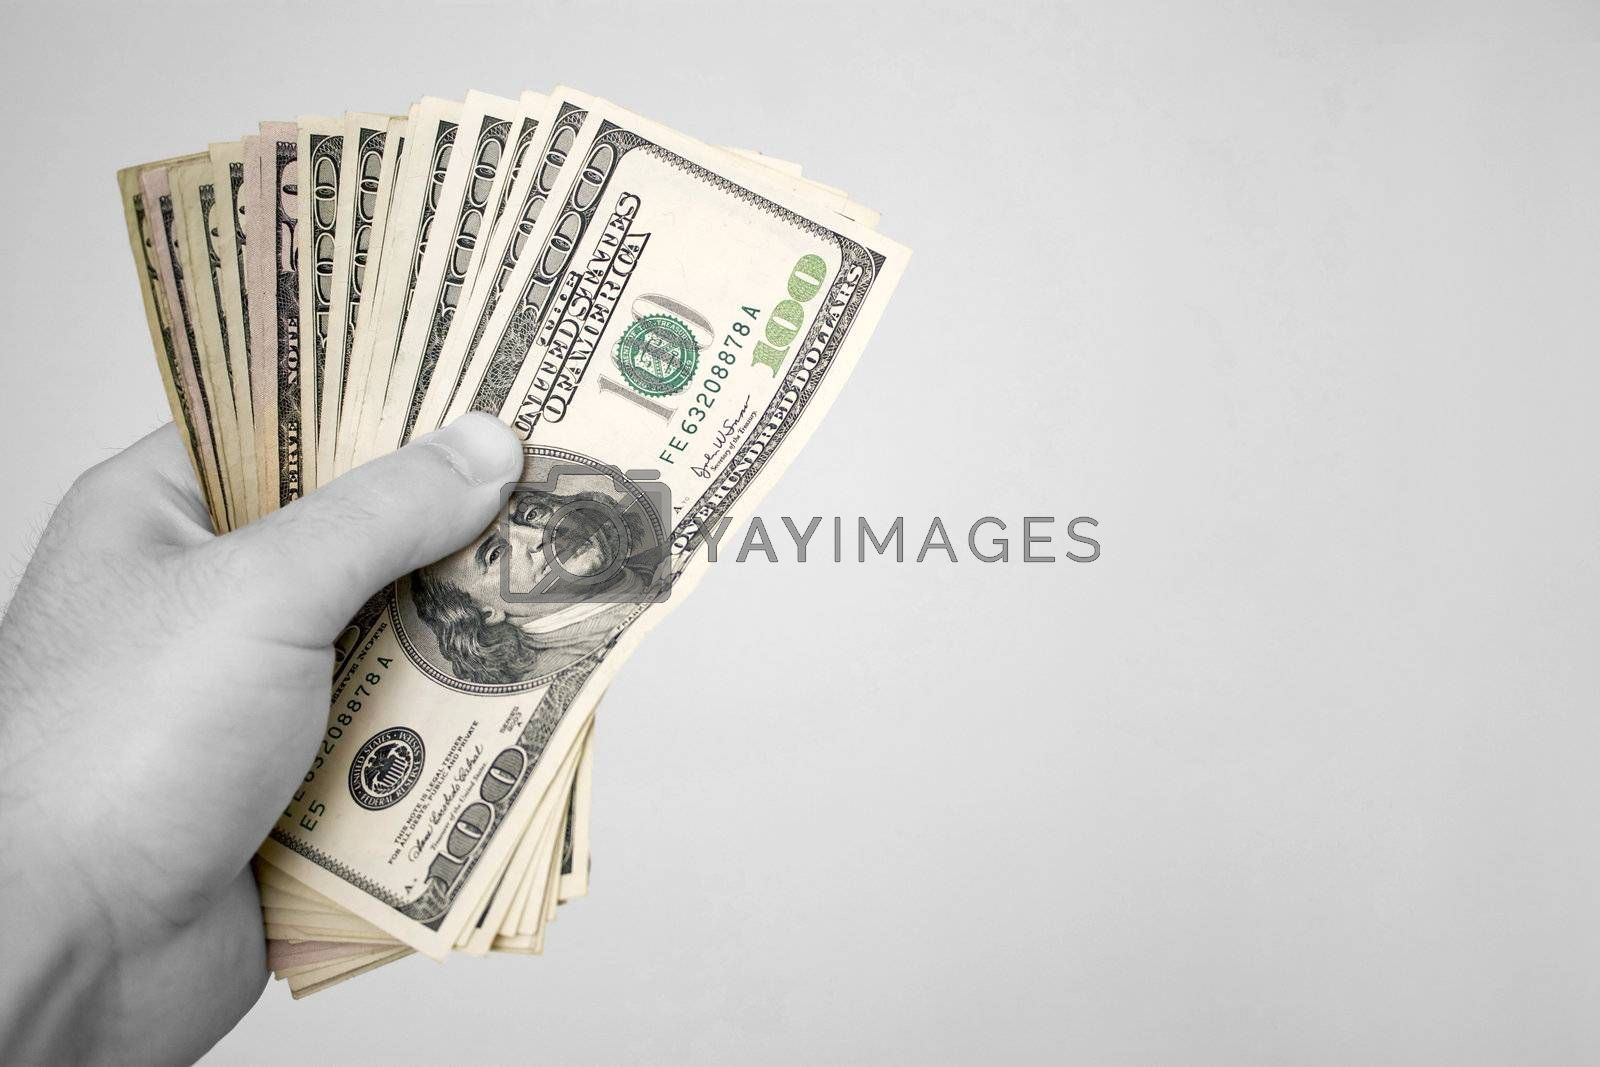 A handful of fanned out cash. The money has selective color, and the rest of the image is in black and white.